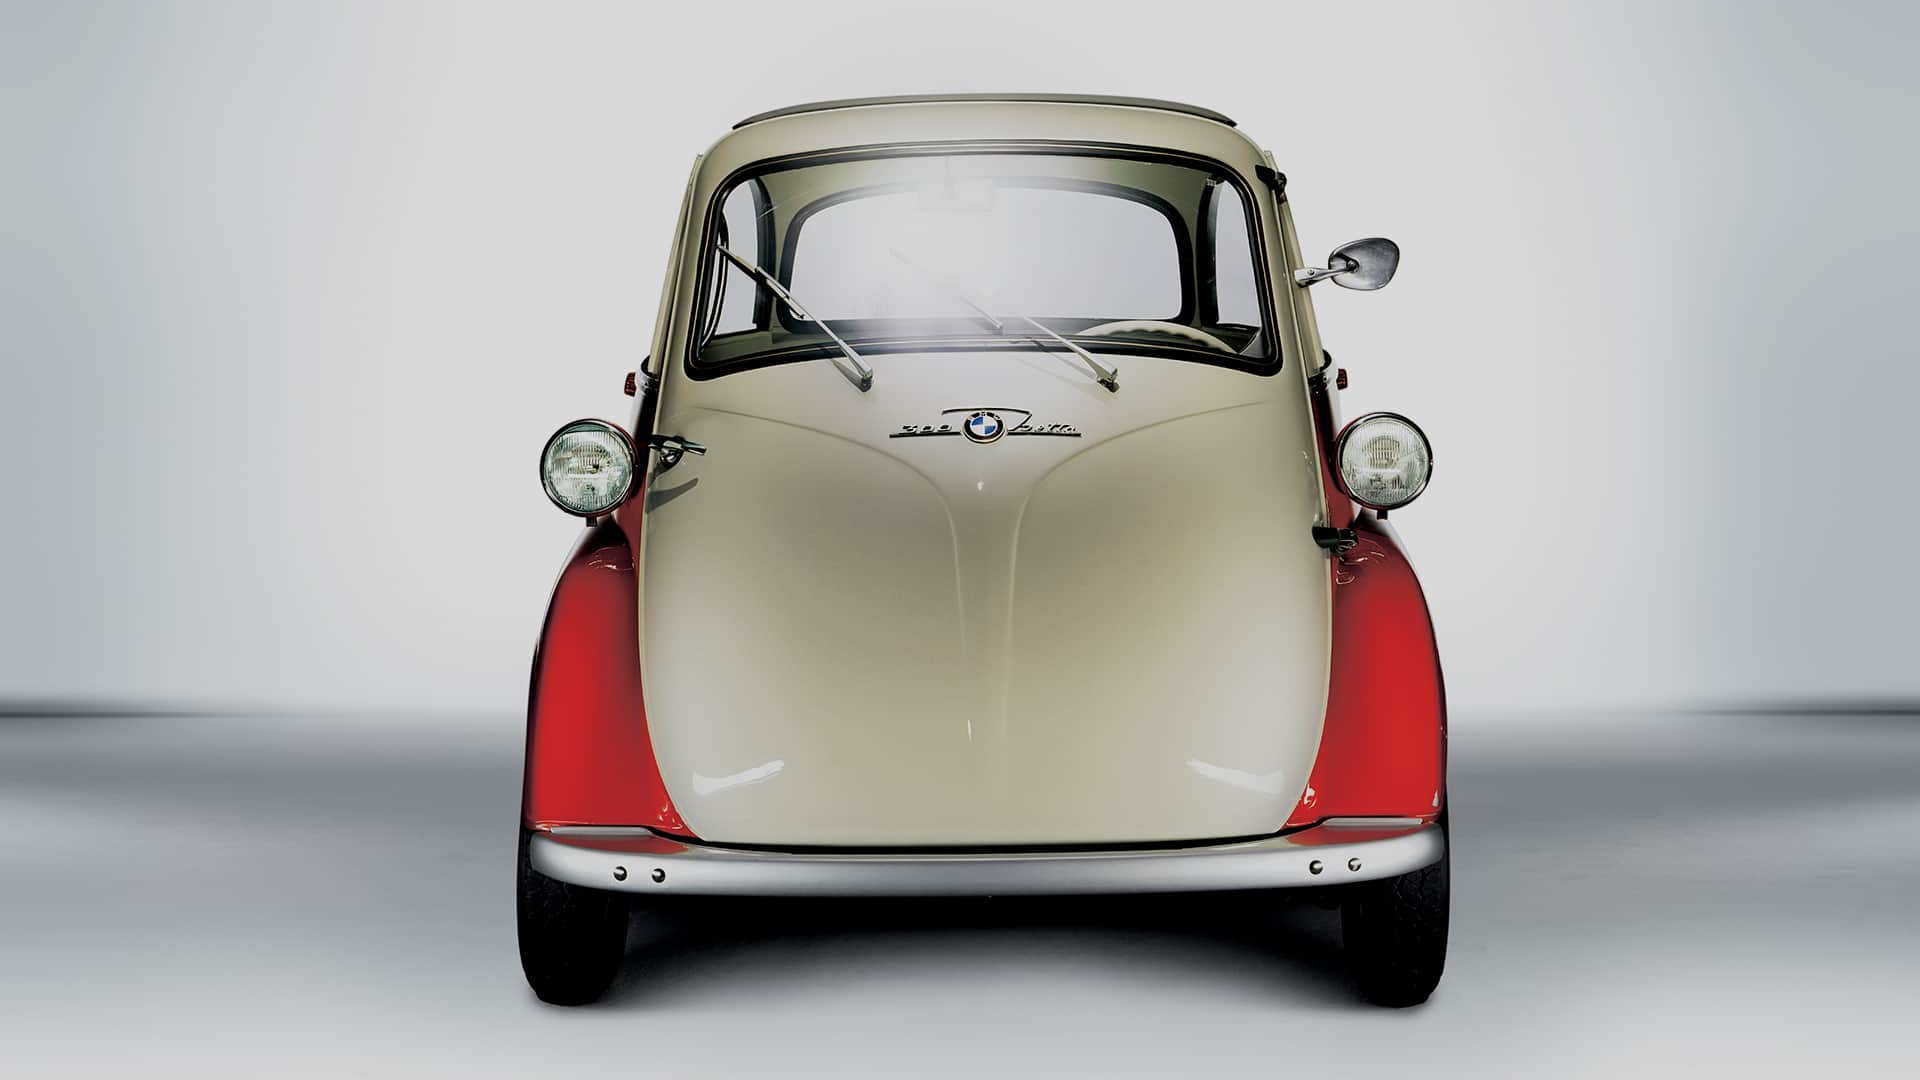 8 tips for when there's a BMW Isetta for sale | BMW com